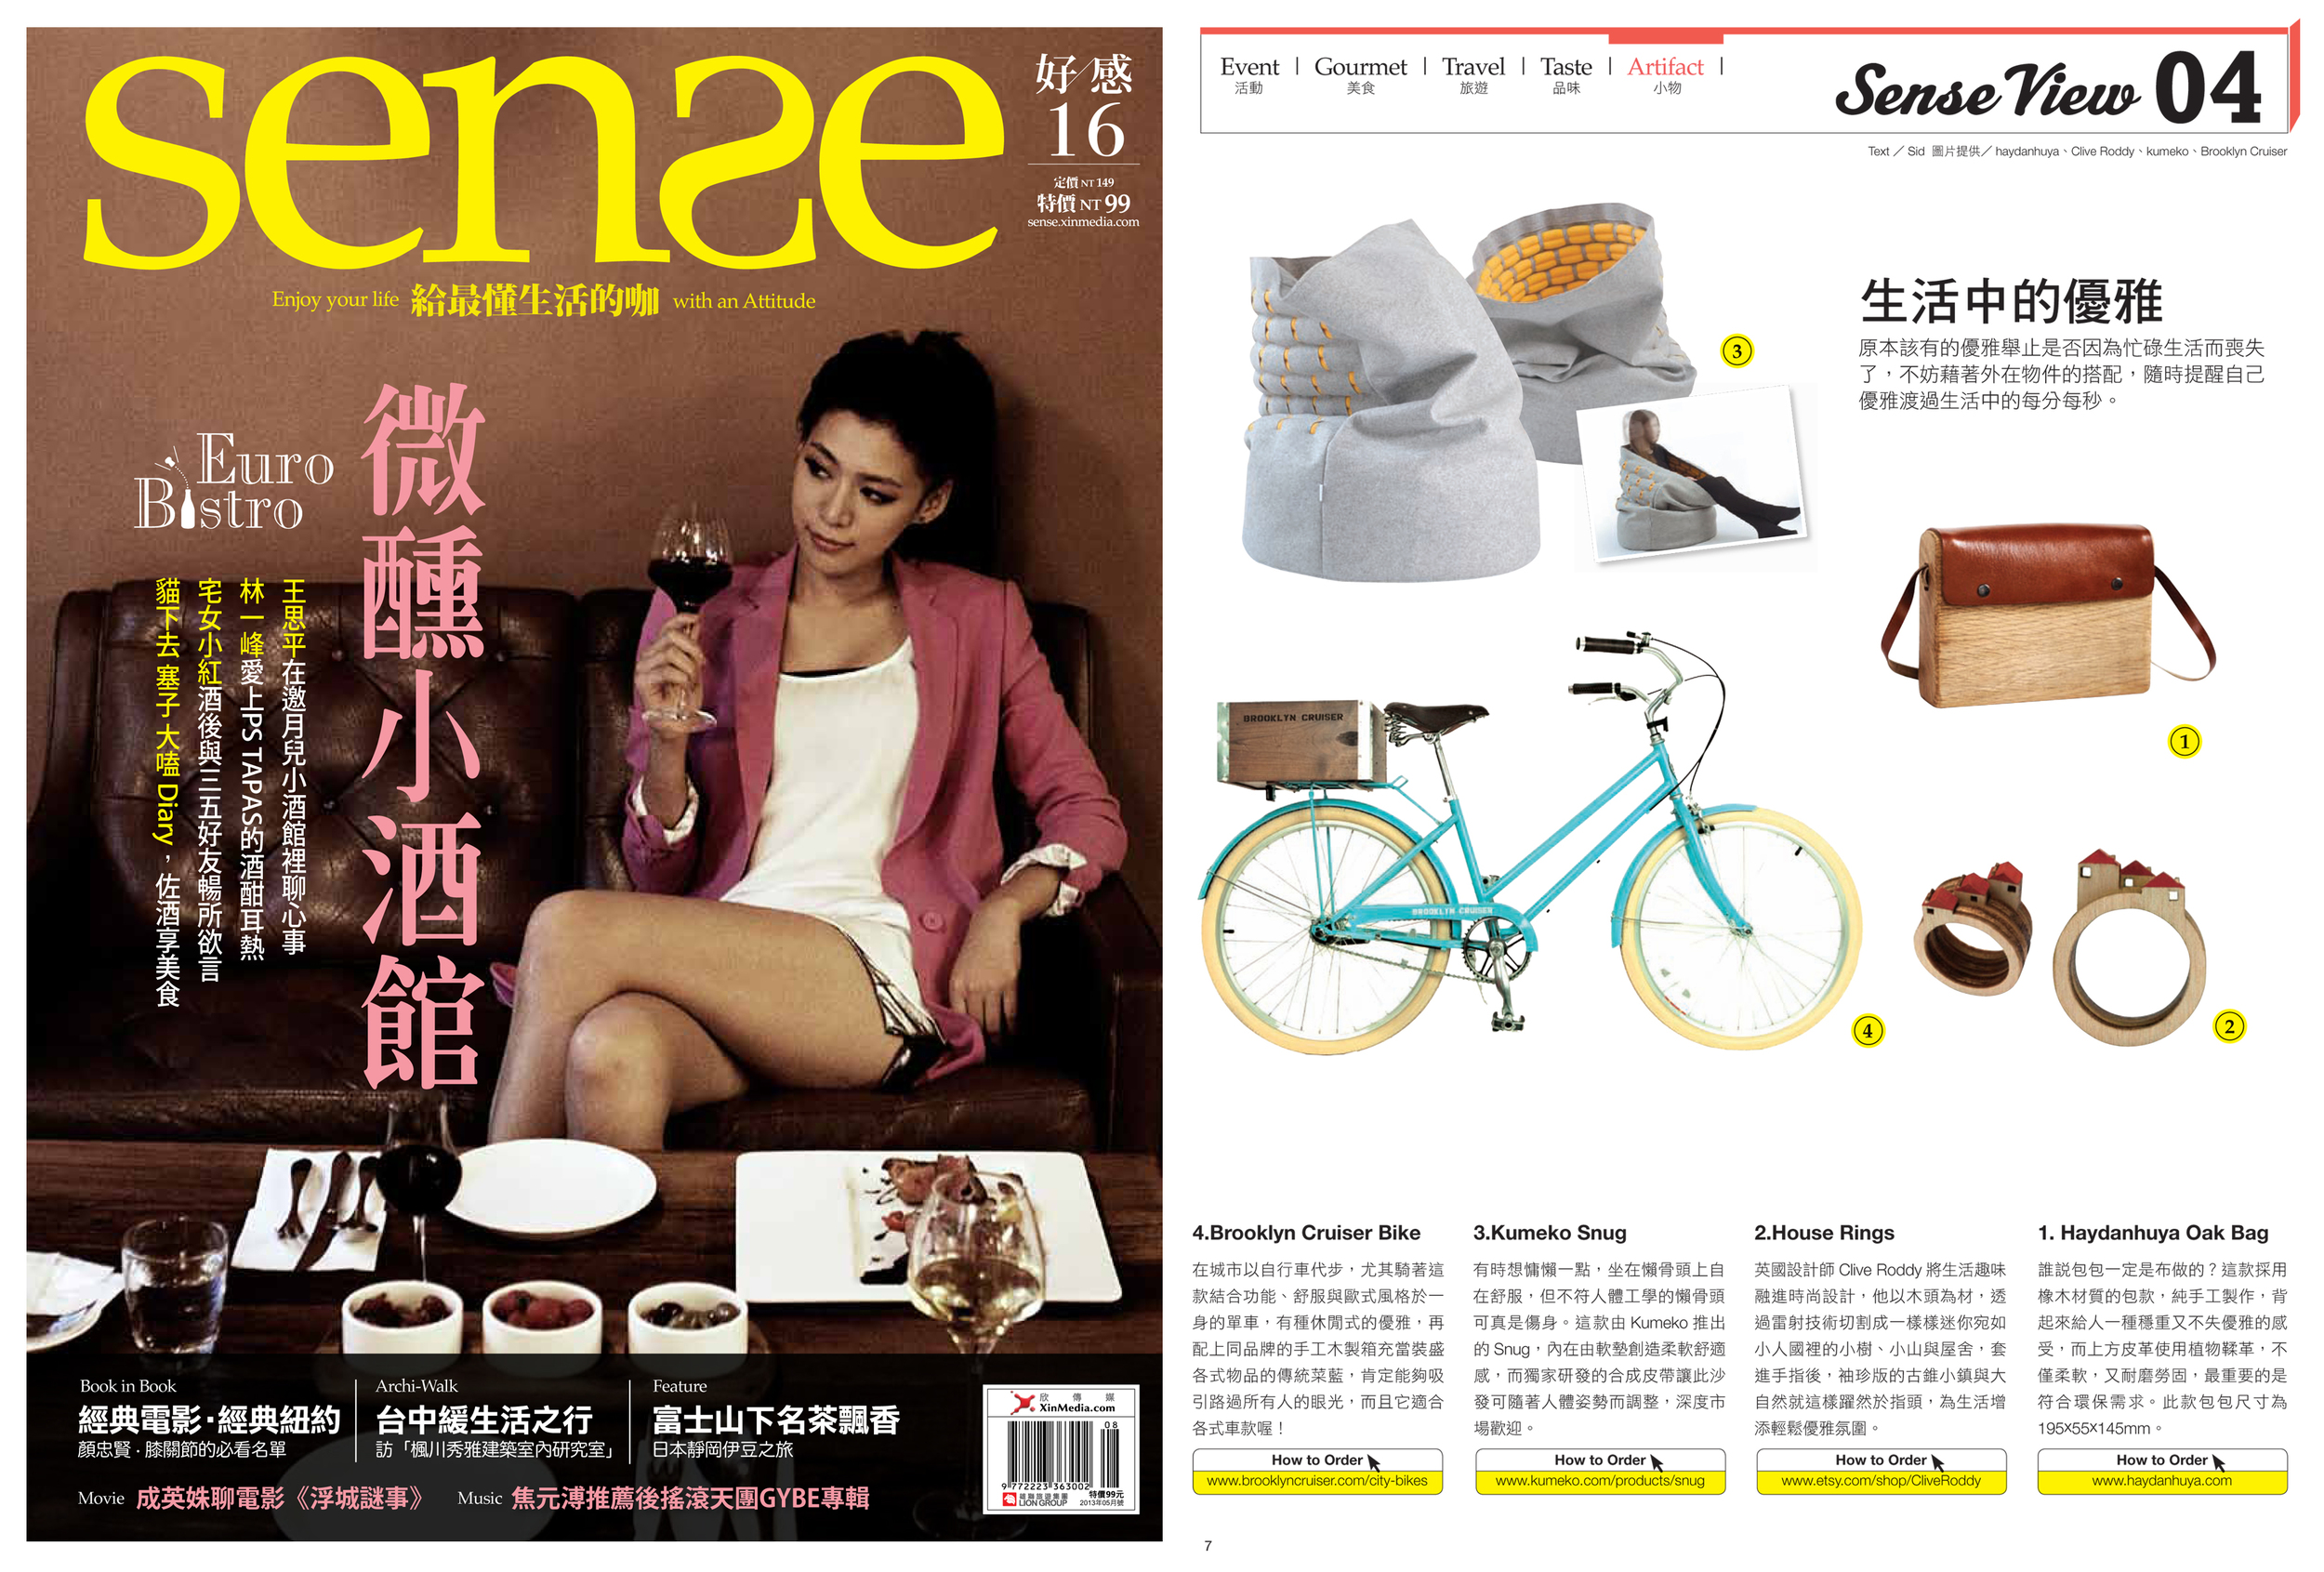 'House Rings' featured in Sense Magazine. Published in May 2013. Taiwan.